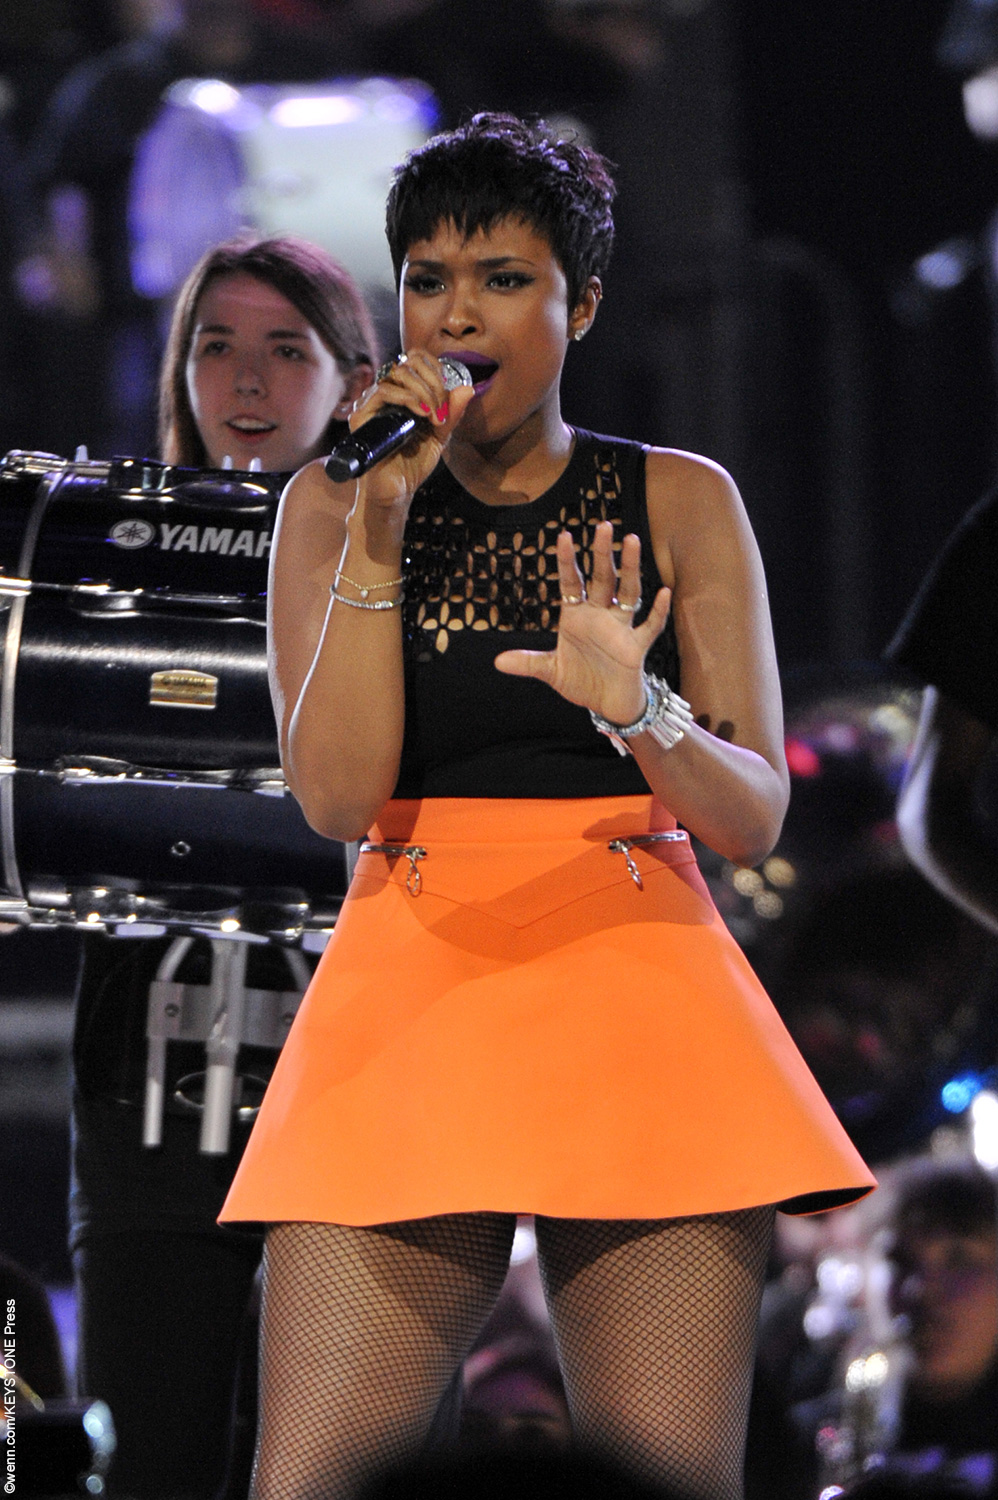 Jennifer Hudson placed seventh in the third season but has gone on to have one of the most successful careers post American Idol. She won many awards including a Grammy, a Golden Globe Award and an Academy Award for her performance in Dreamgirls. Jennifer's third album JHUD was released in 2014 to great success. Next, she's going to make […]